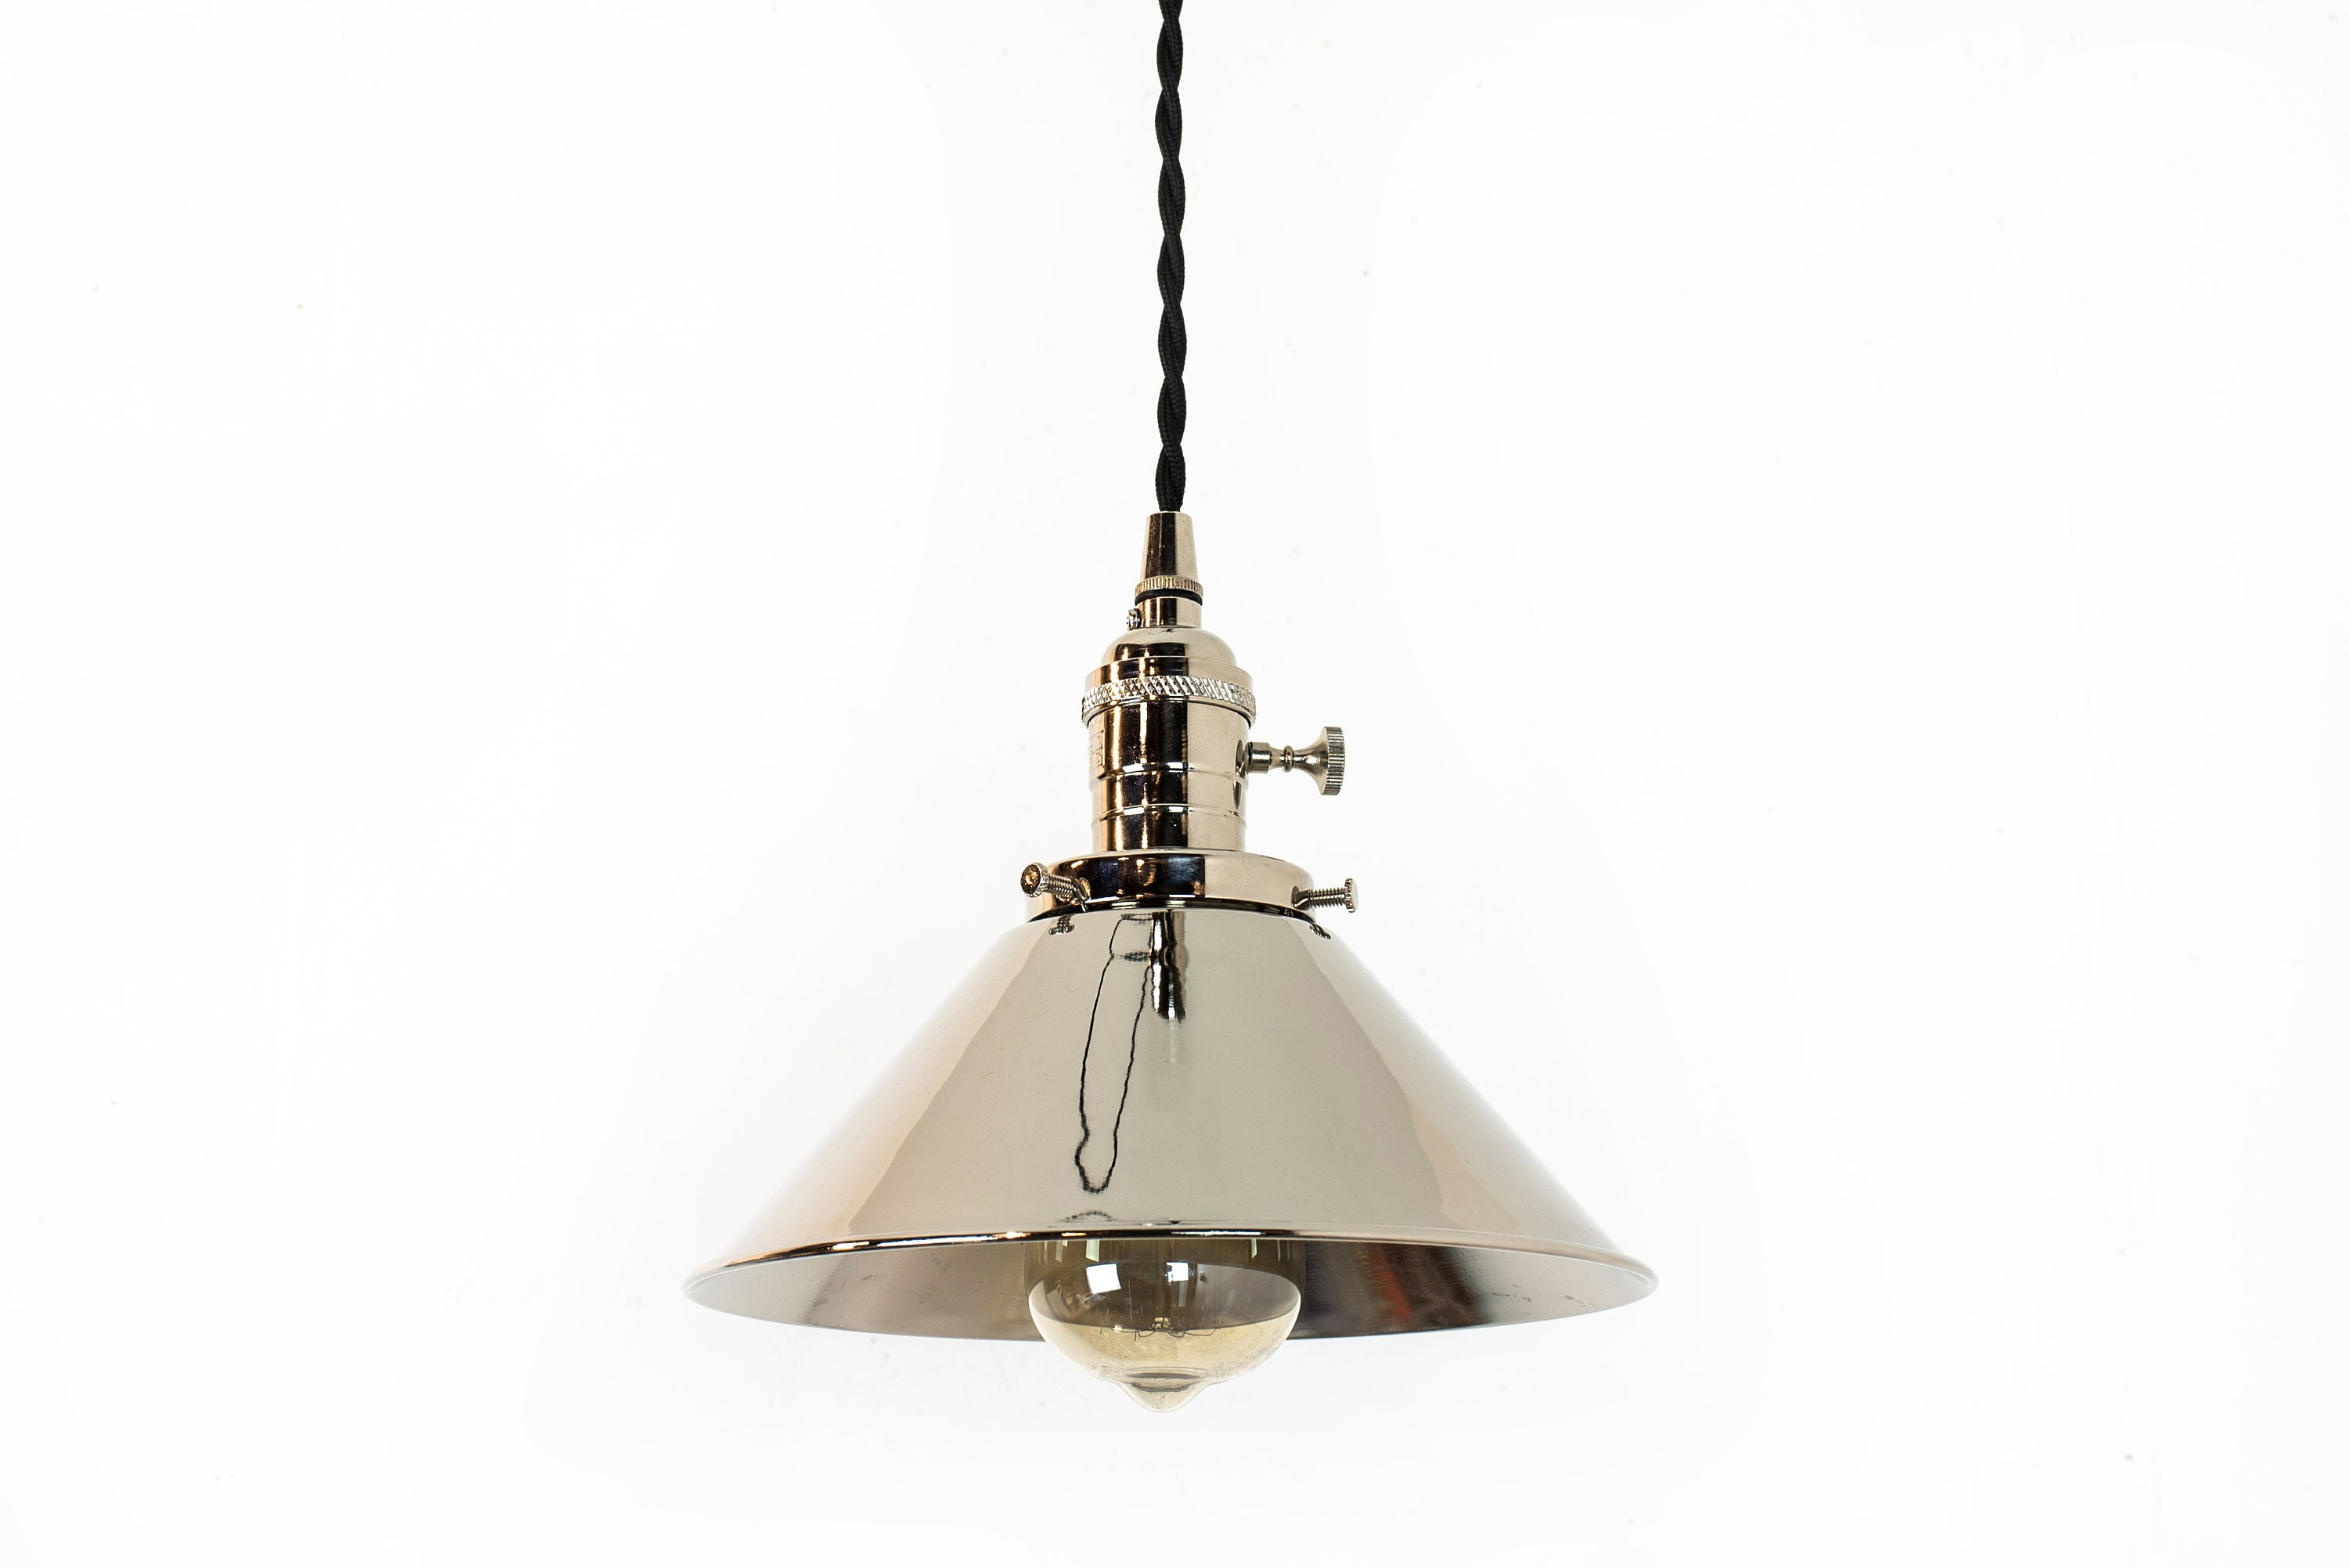 Nickel Pendant Light Chrome Hanging Lamp Plug In Pendant Modern Light Fixture Kitchen Lights Farmhouse Decor Polished Nickel